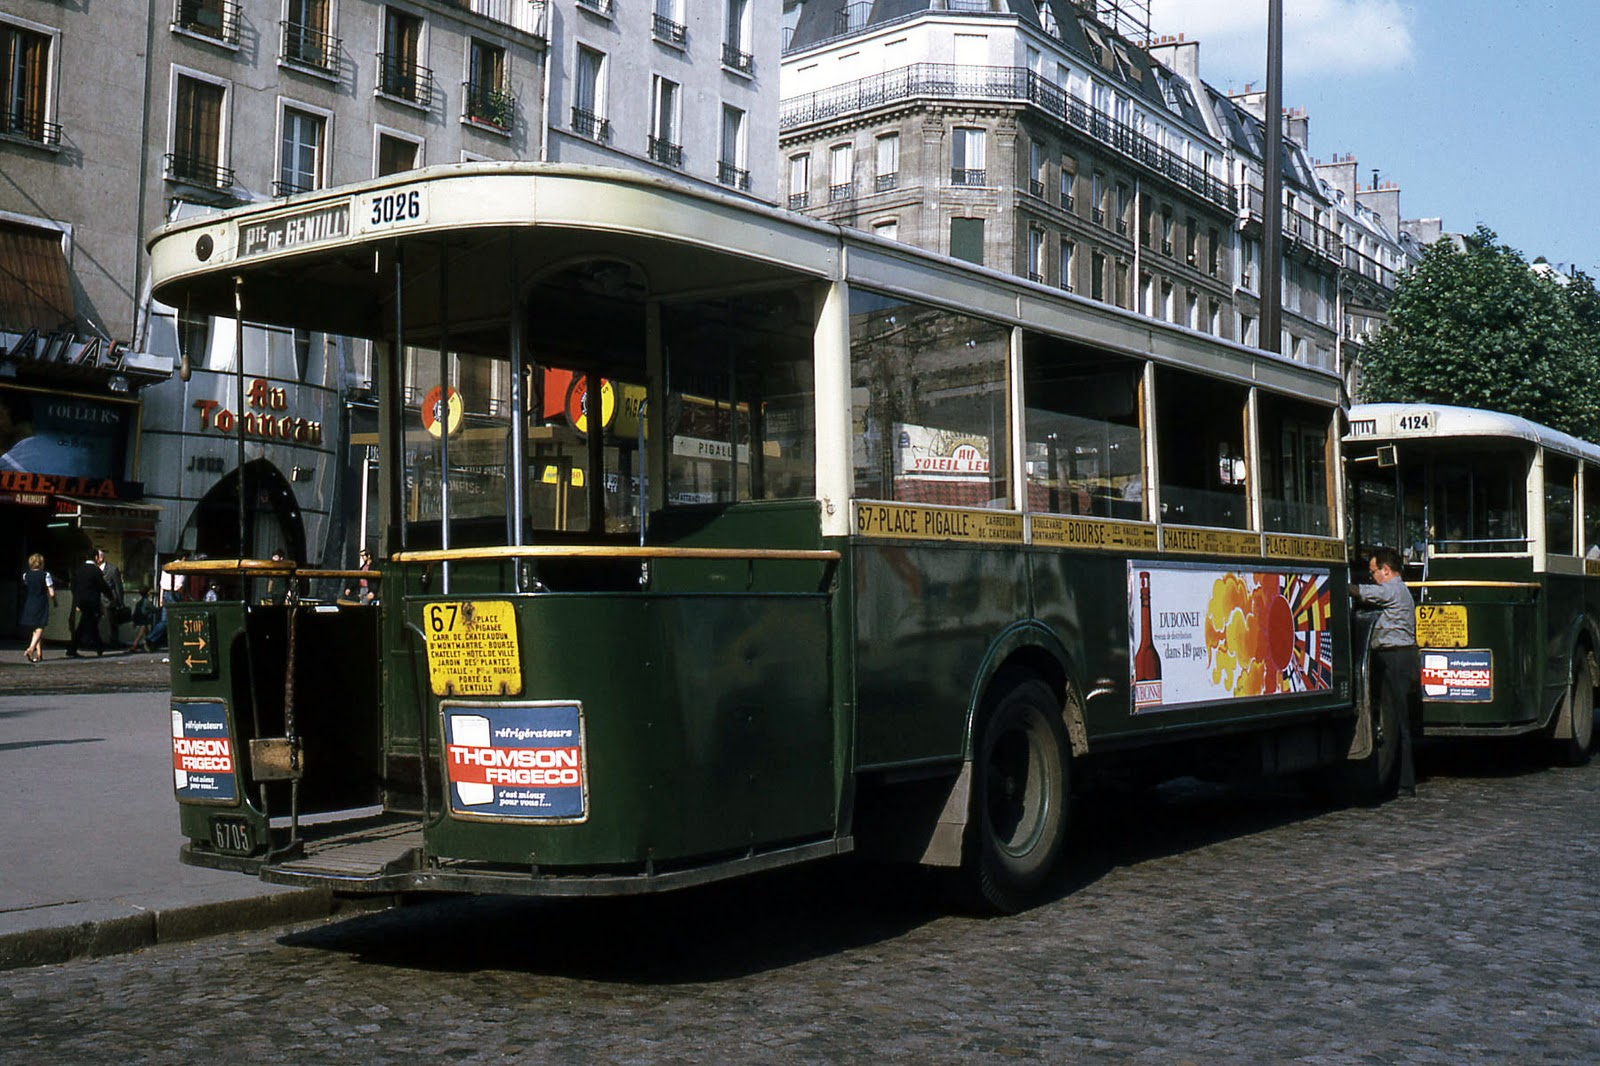 transpress nz classic renault buses in place pigalle paris. Black Bedroom Furniture Sets. Home Design Ideas